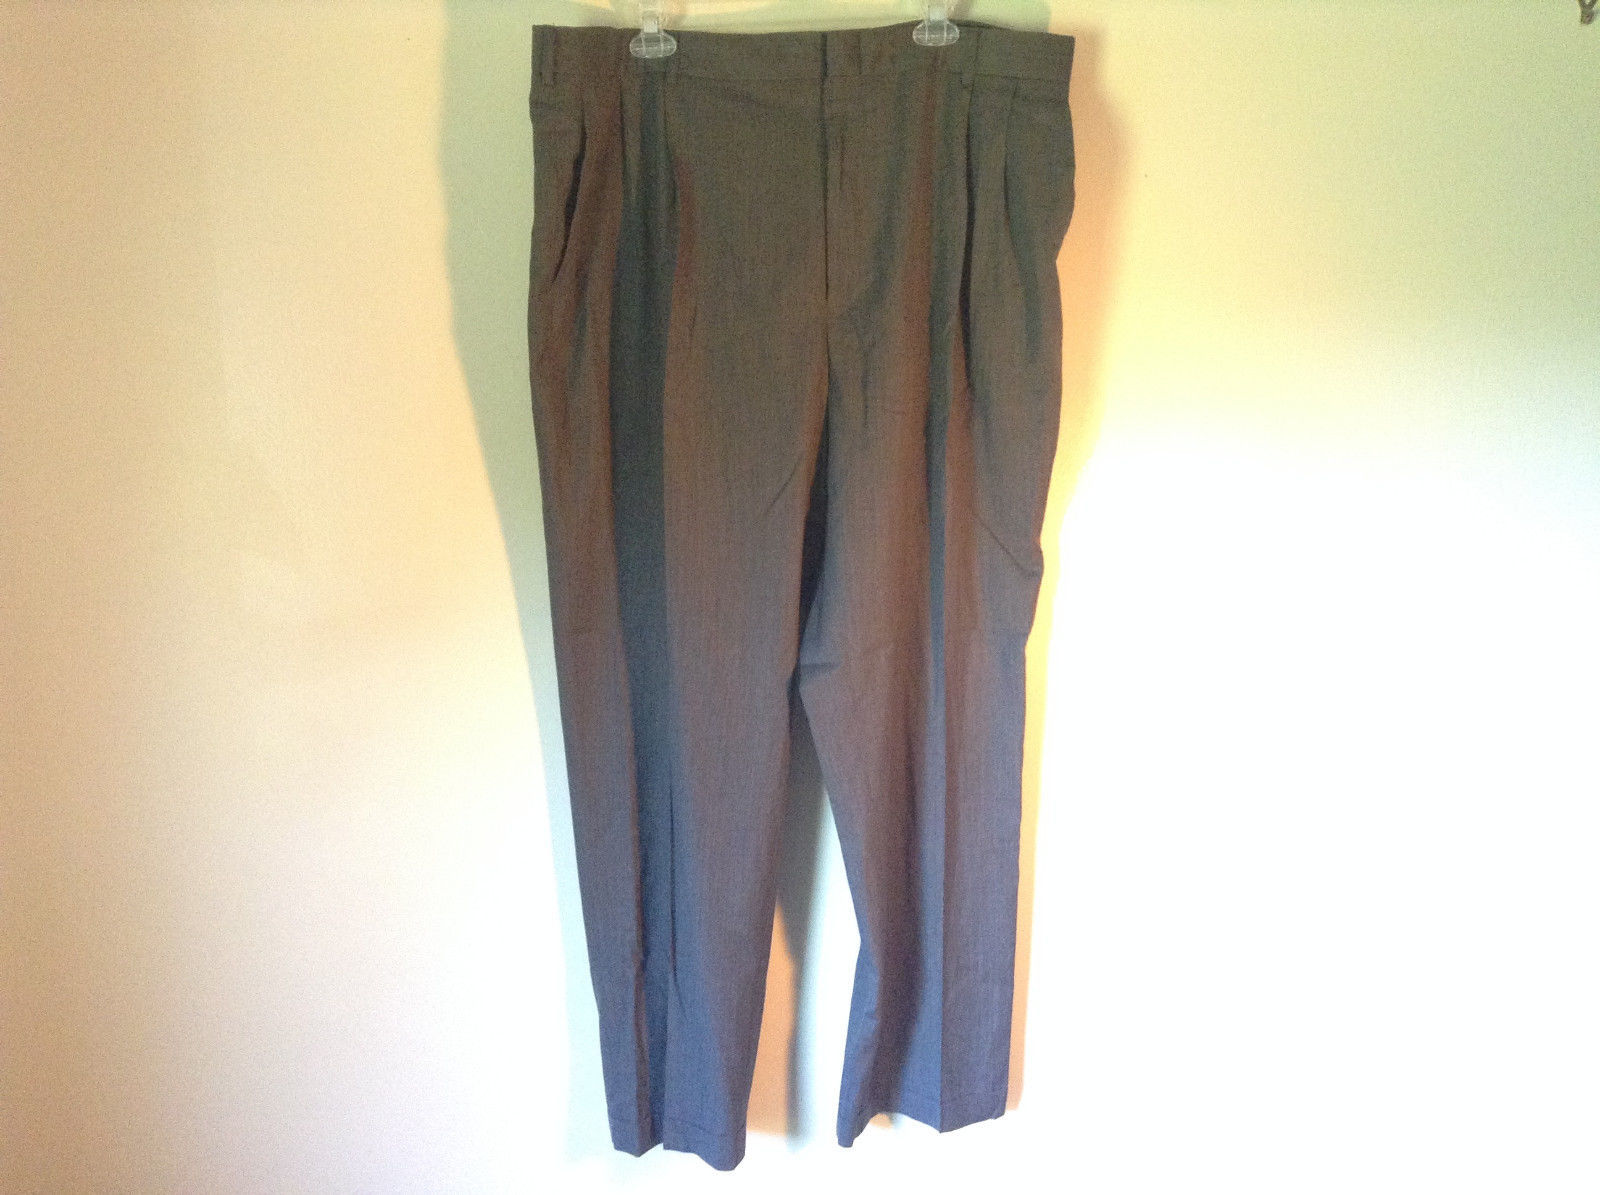 Dark Gray Pleated Dress Pants Jos A Bank Size 42W by 30L Front Backk Pockets